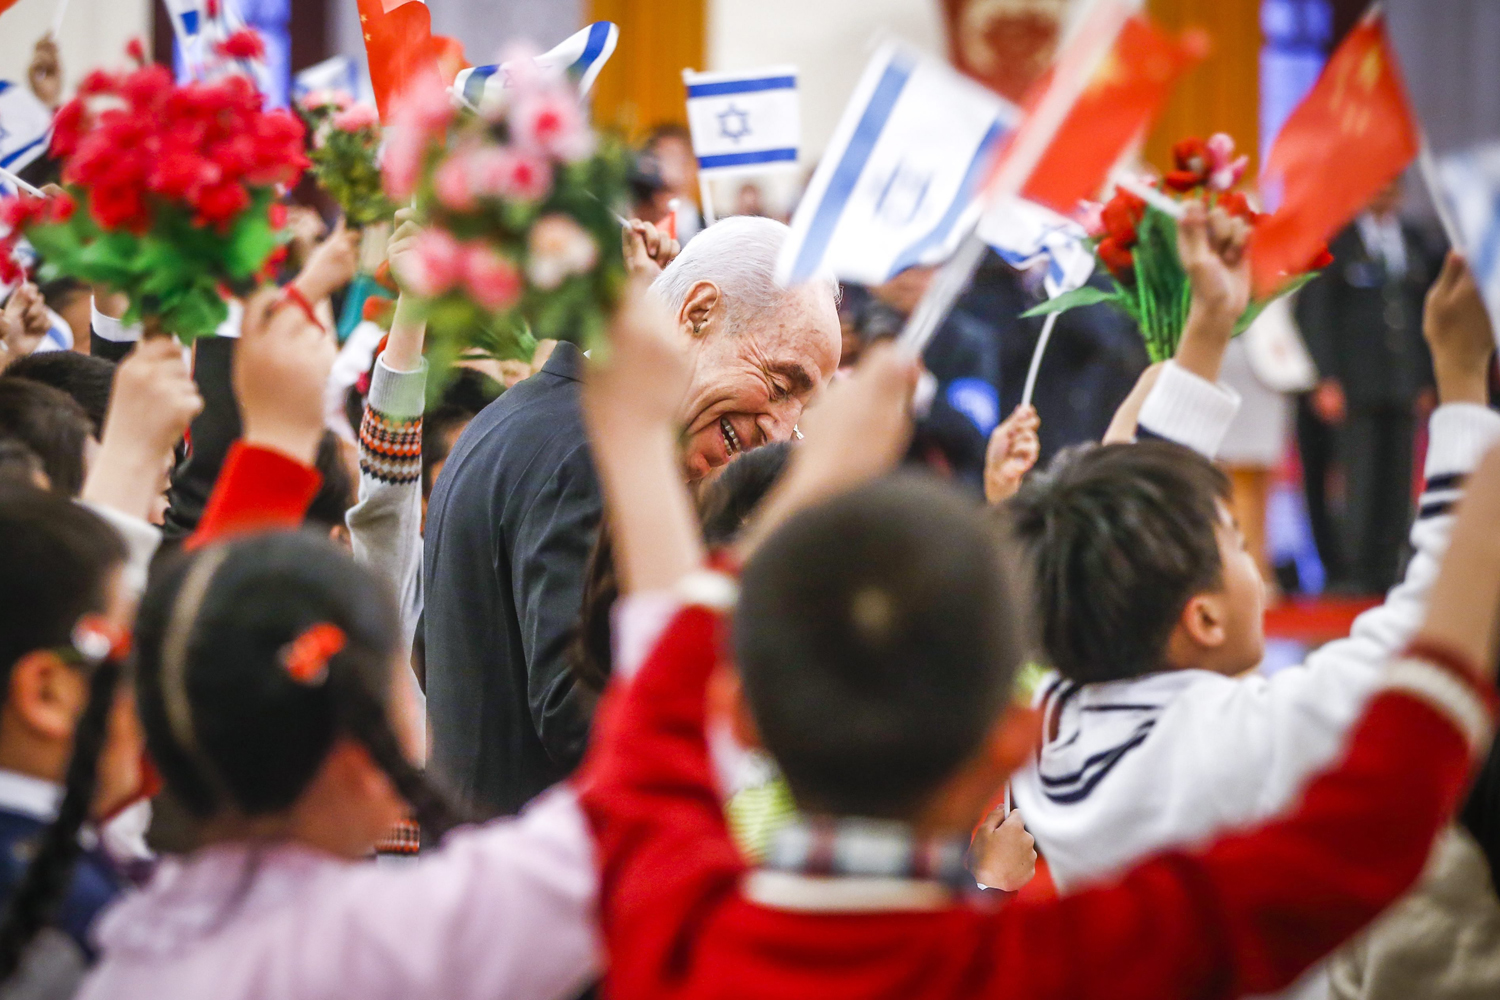 Apr. 8, 2014. Israeli President Shimon Peres (C) talks to school children holding Chinese and Israeli national flags during a welcoming ceremony hosted by Chinese President Xi Jinping (not in picture) inside the Great Hall of the People in Beijing, China.